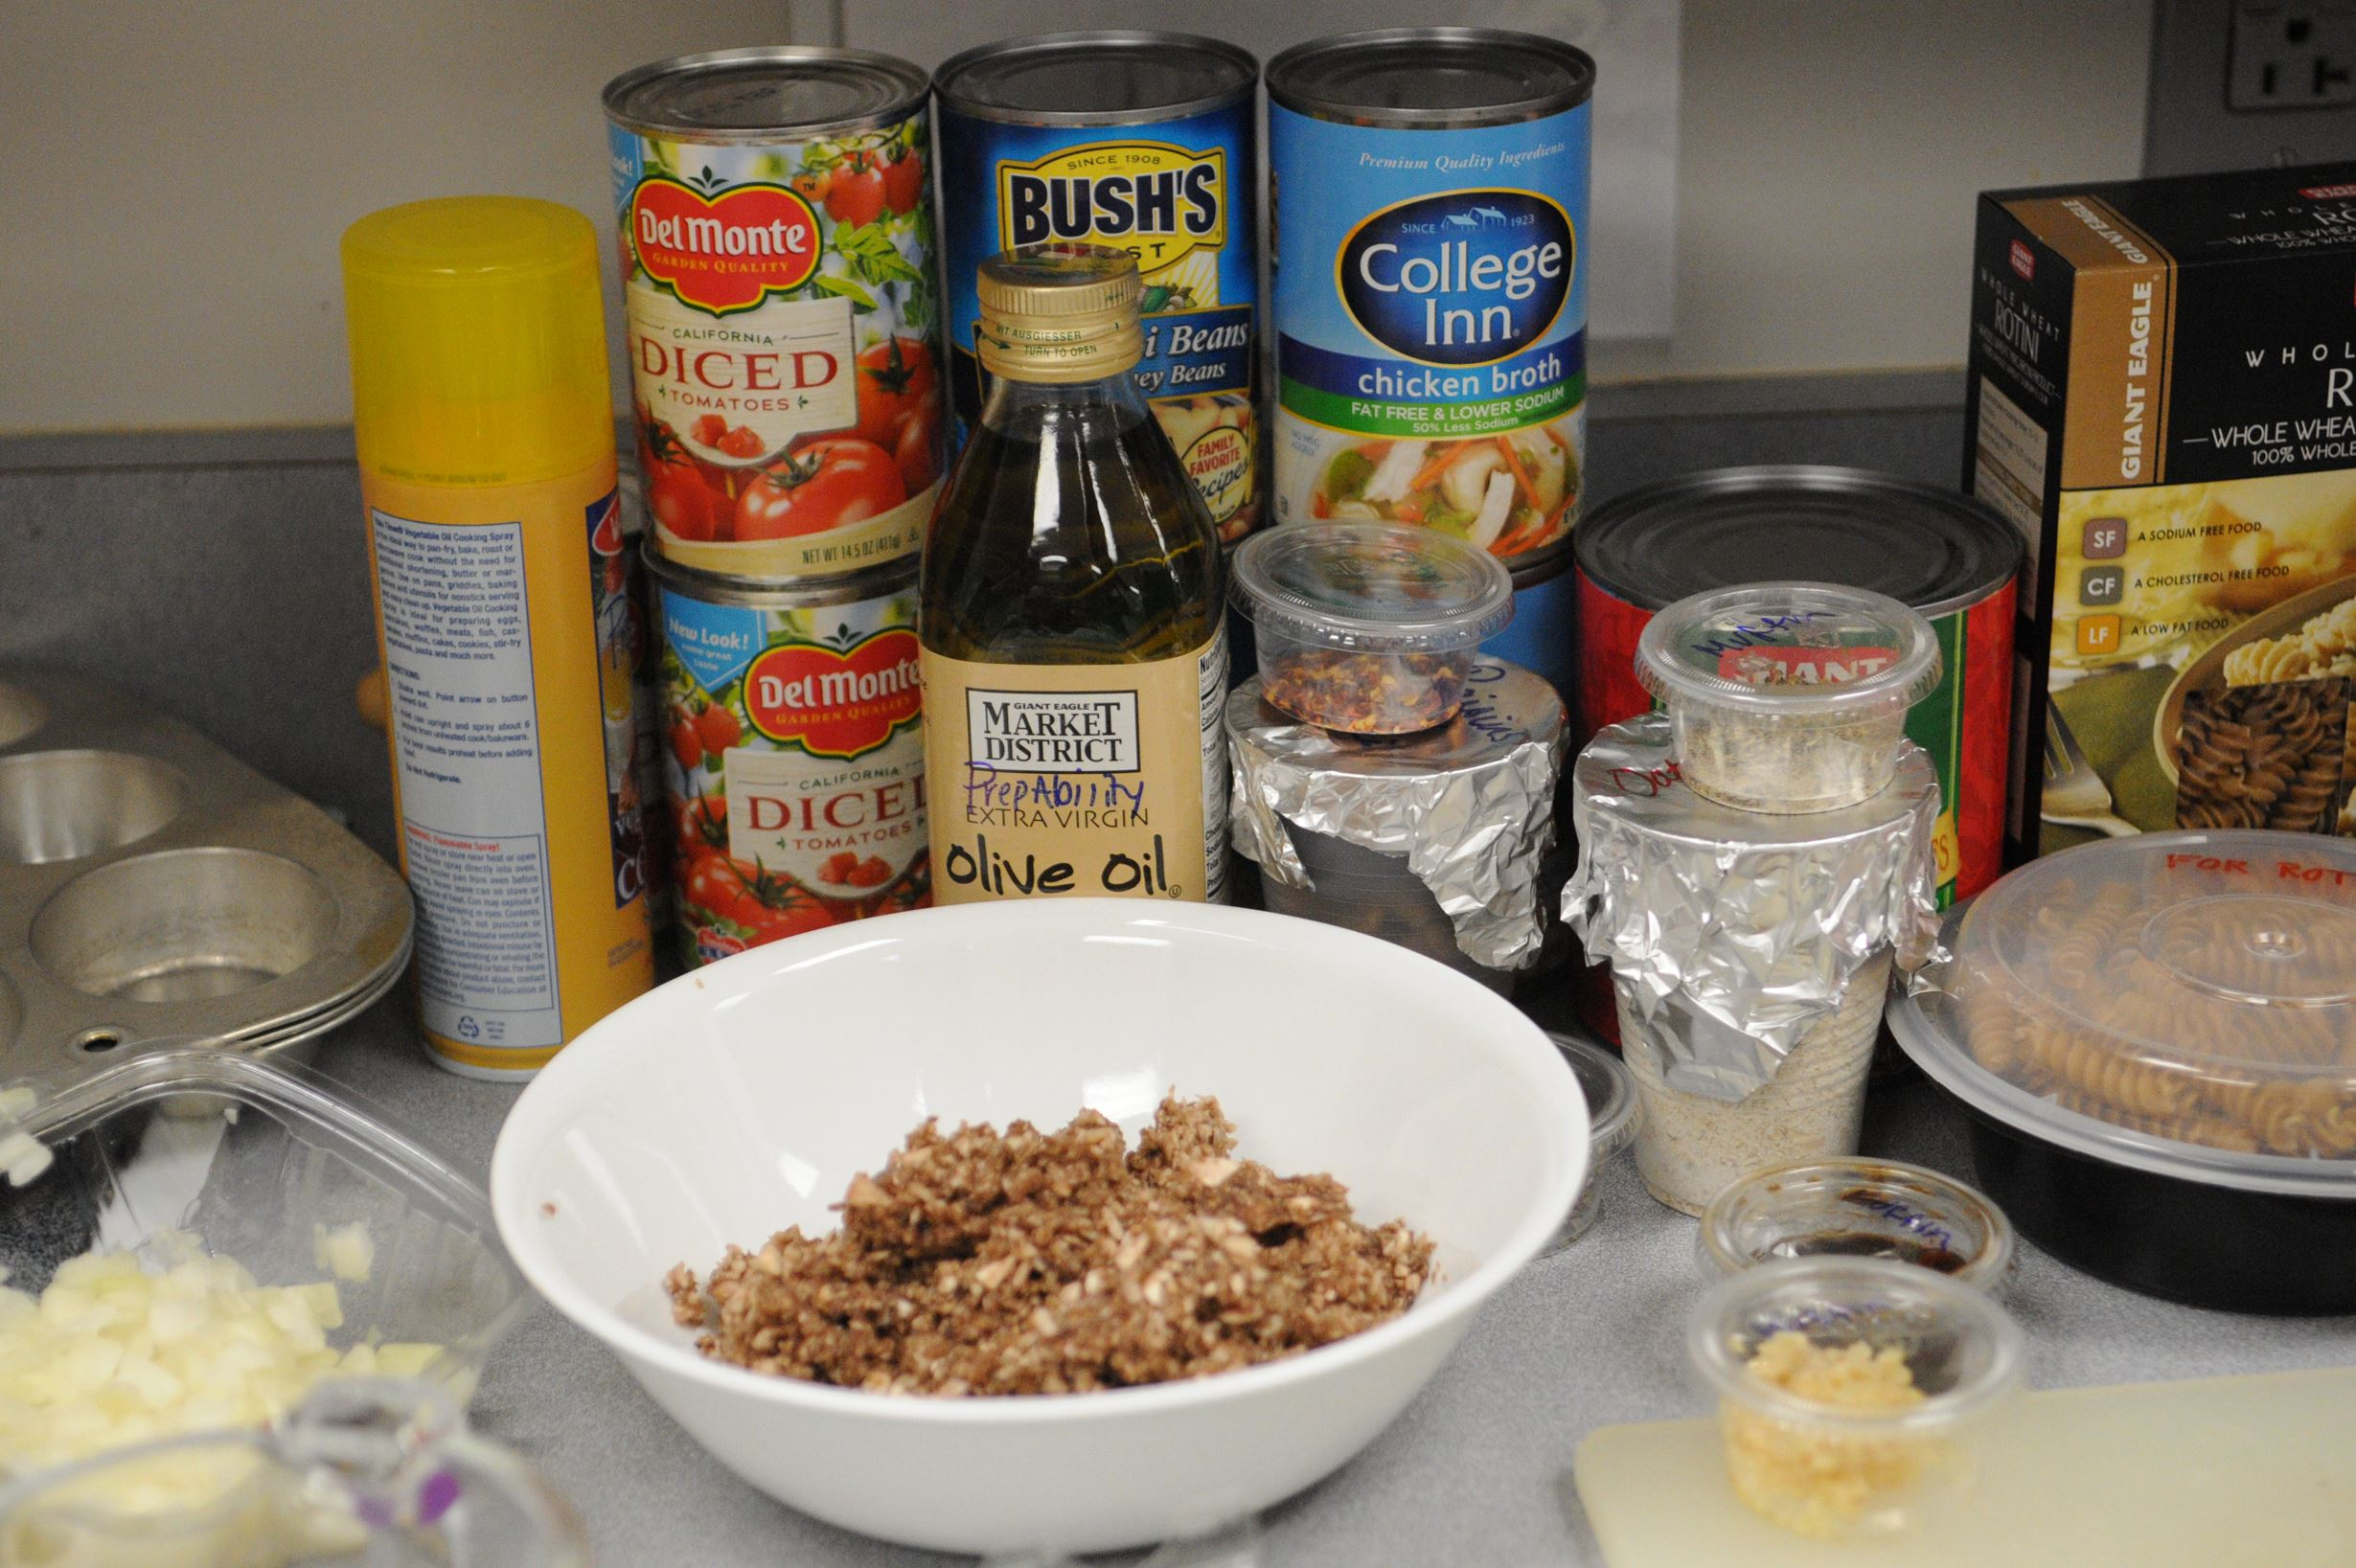 20140118ttCookingFood4-3  Ingredients for the recipes for the PrepAbility class sit on a counter.